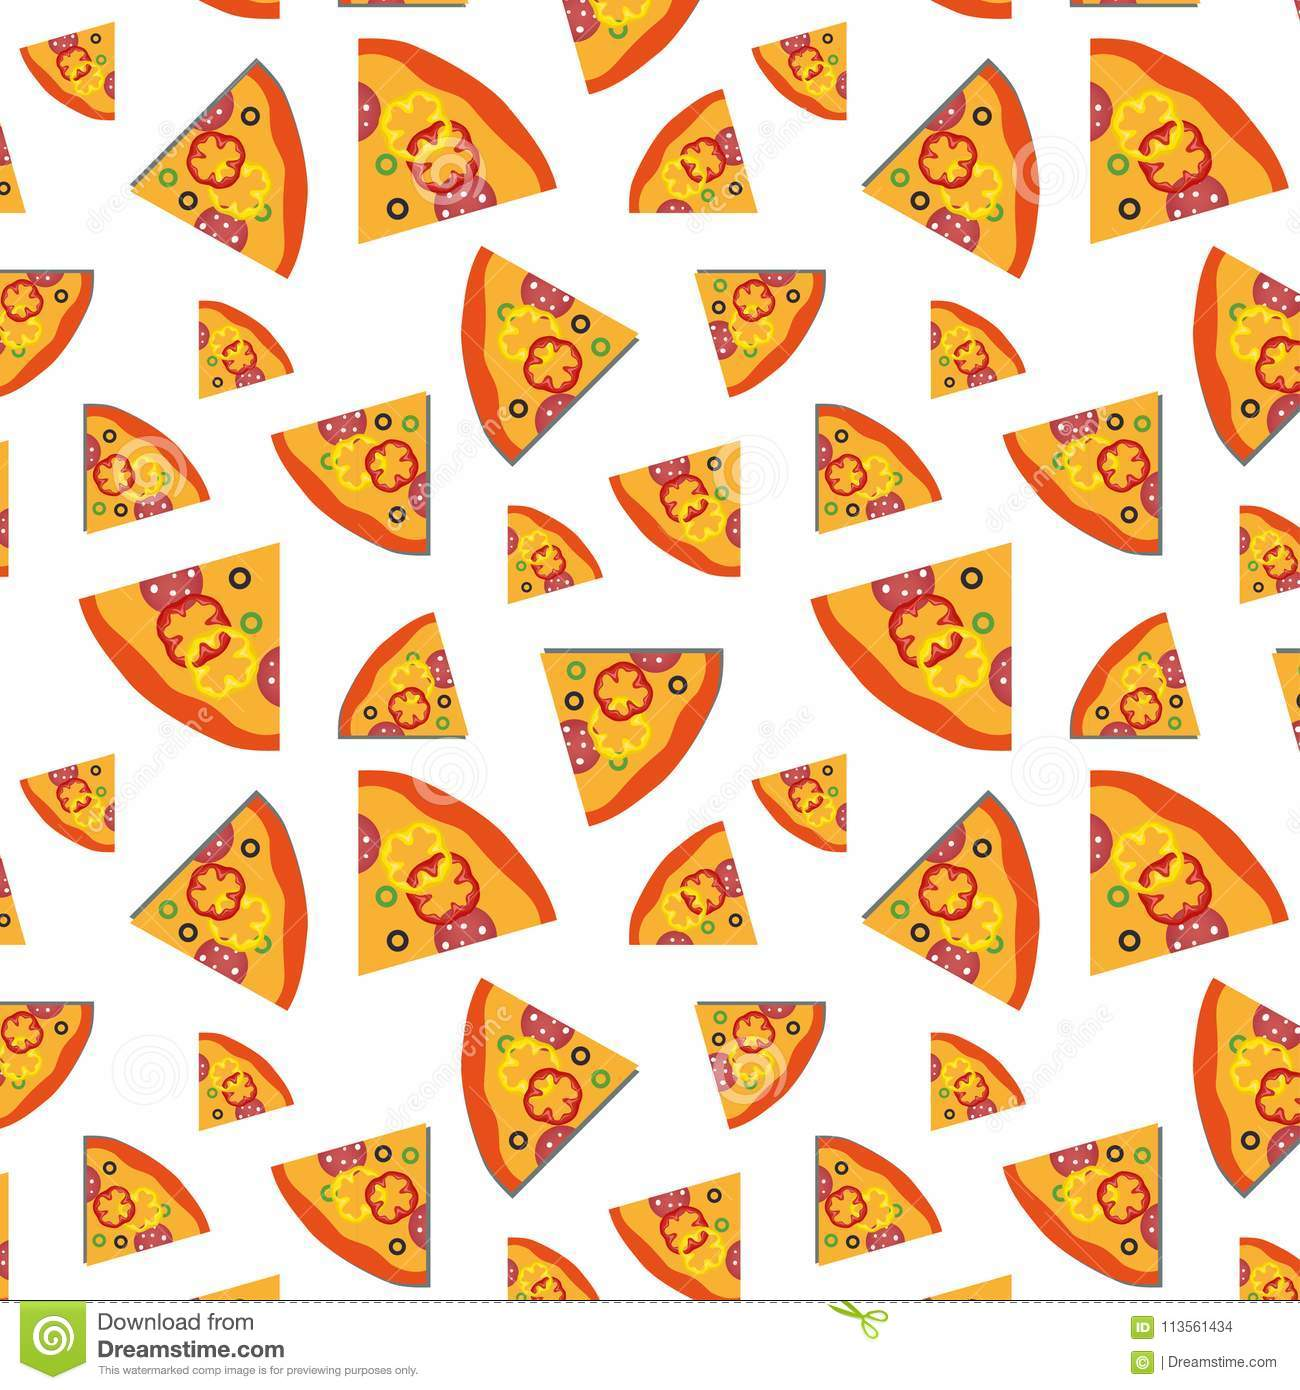 Vector pattern with pizza slices and vegetables background. Art illustration design